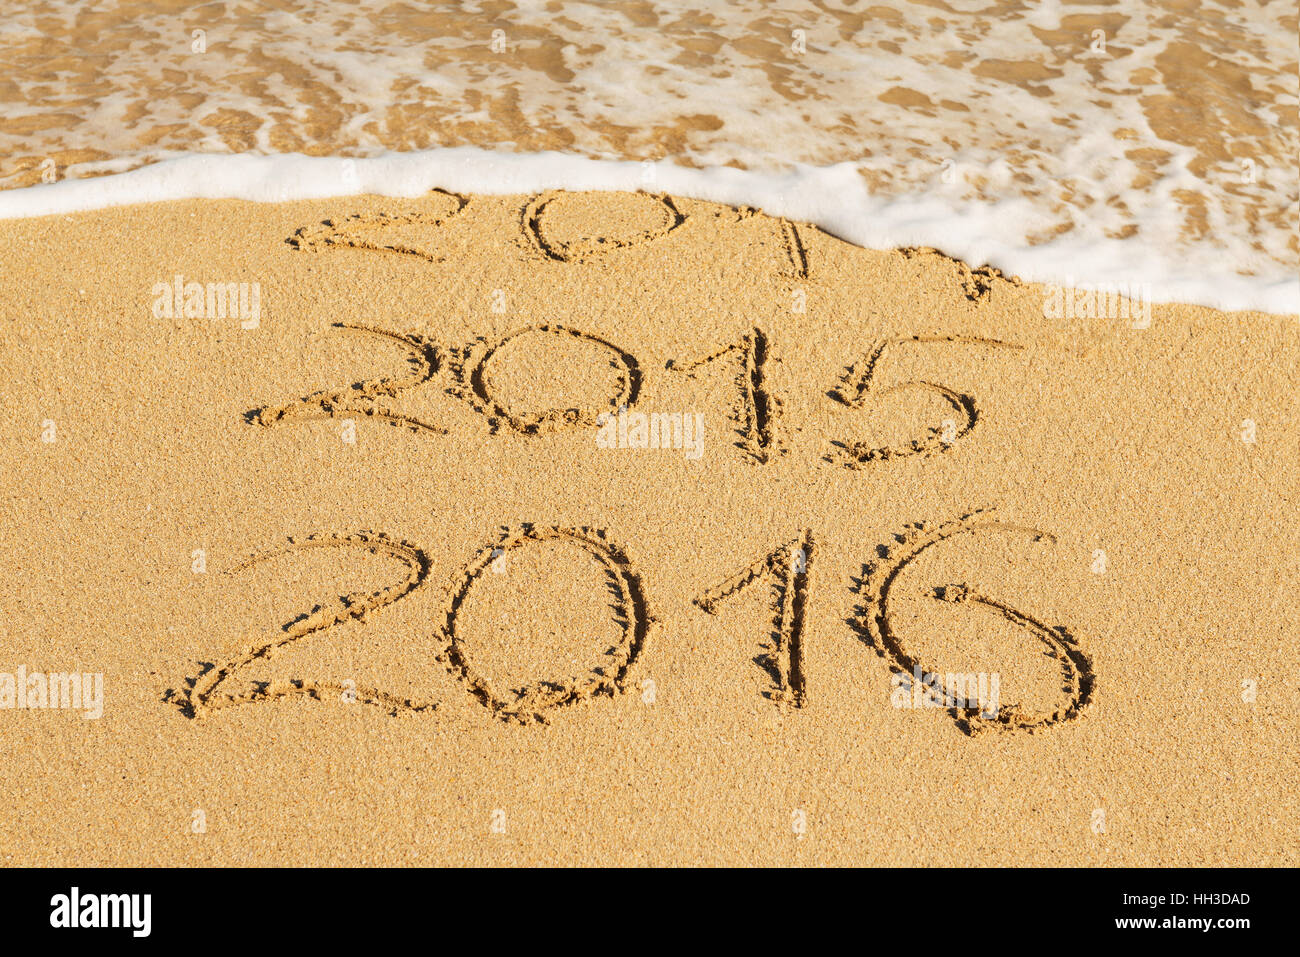 digits  2014,2015 and 2016 on the sand seashore - concept of new year and passing time - Stock Image